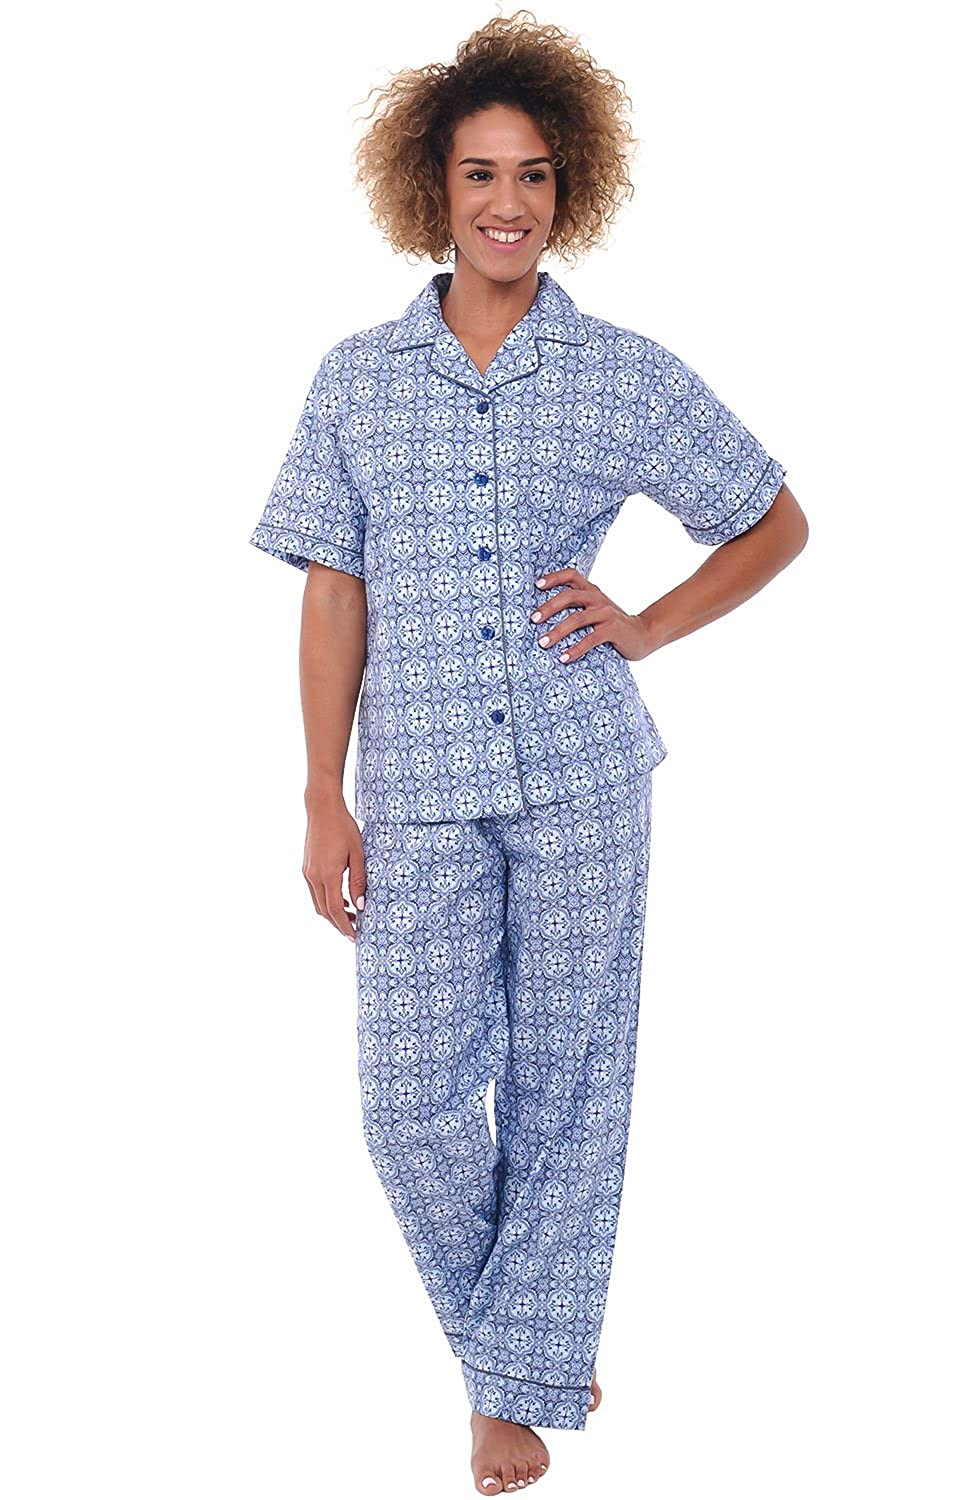 765f948ce7 Alexander Del Rossa Womens Woven Cotton Pajama Set with Pants, Polka Dot  Button Down Pjs at Amazon Women's Clothing store: